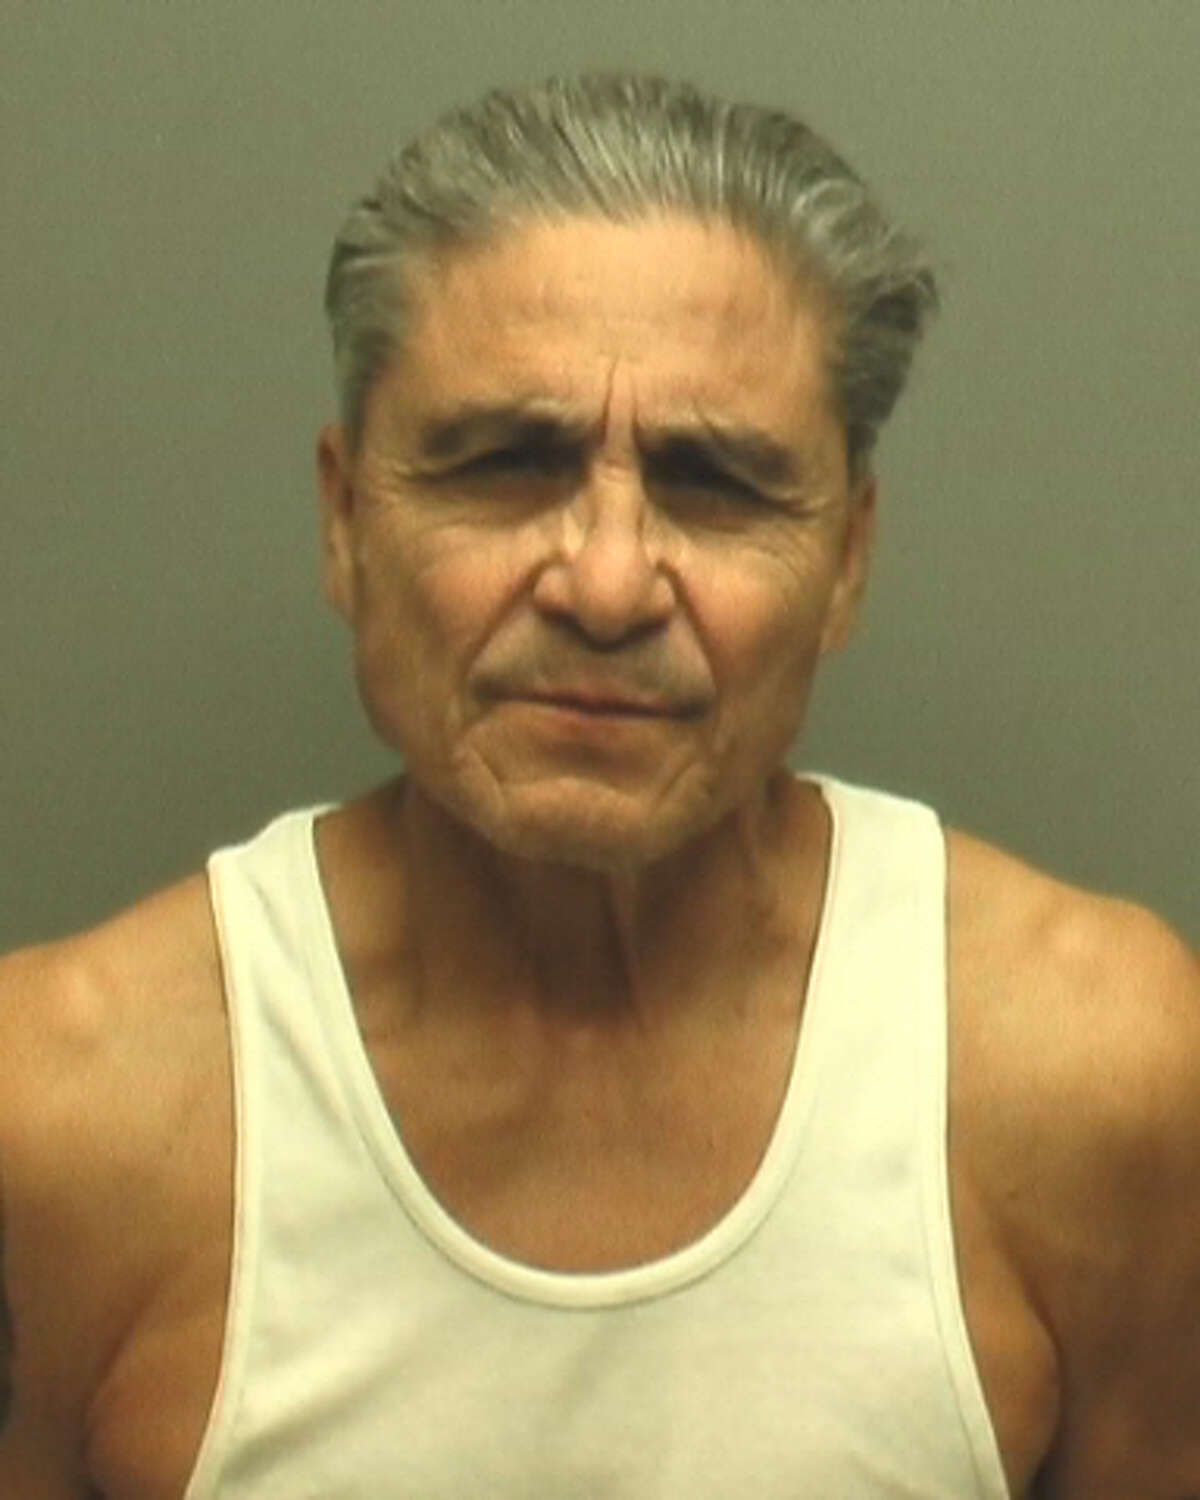 Jose Marin, 64, was arrested on Jan. 17, 2015, on a felony charge of driving while intoxicated.